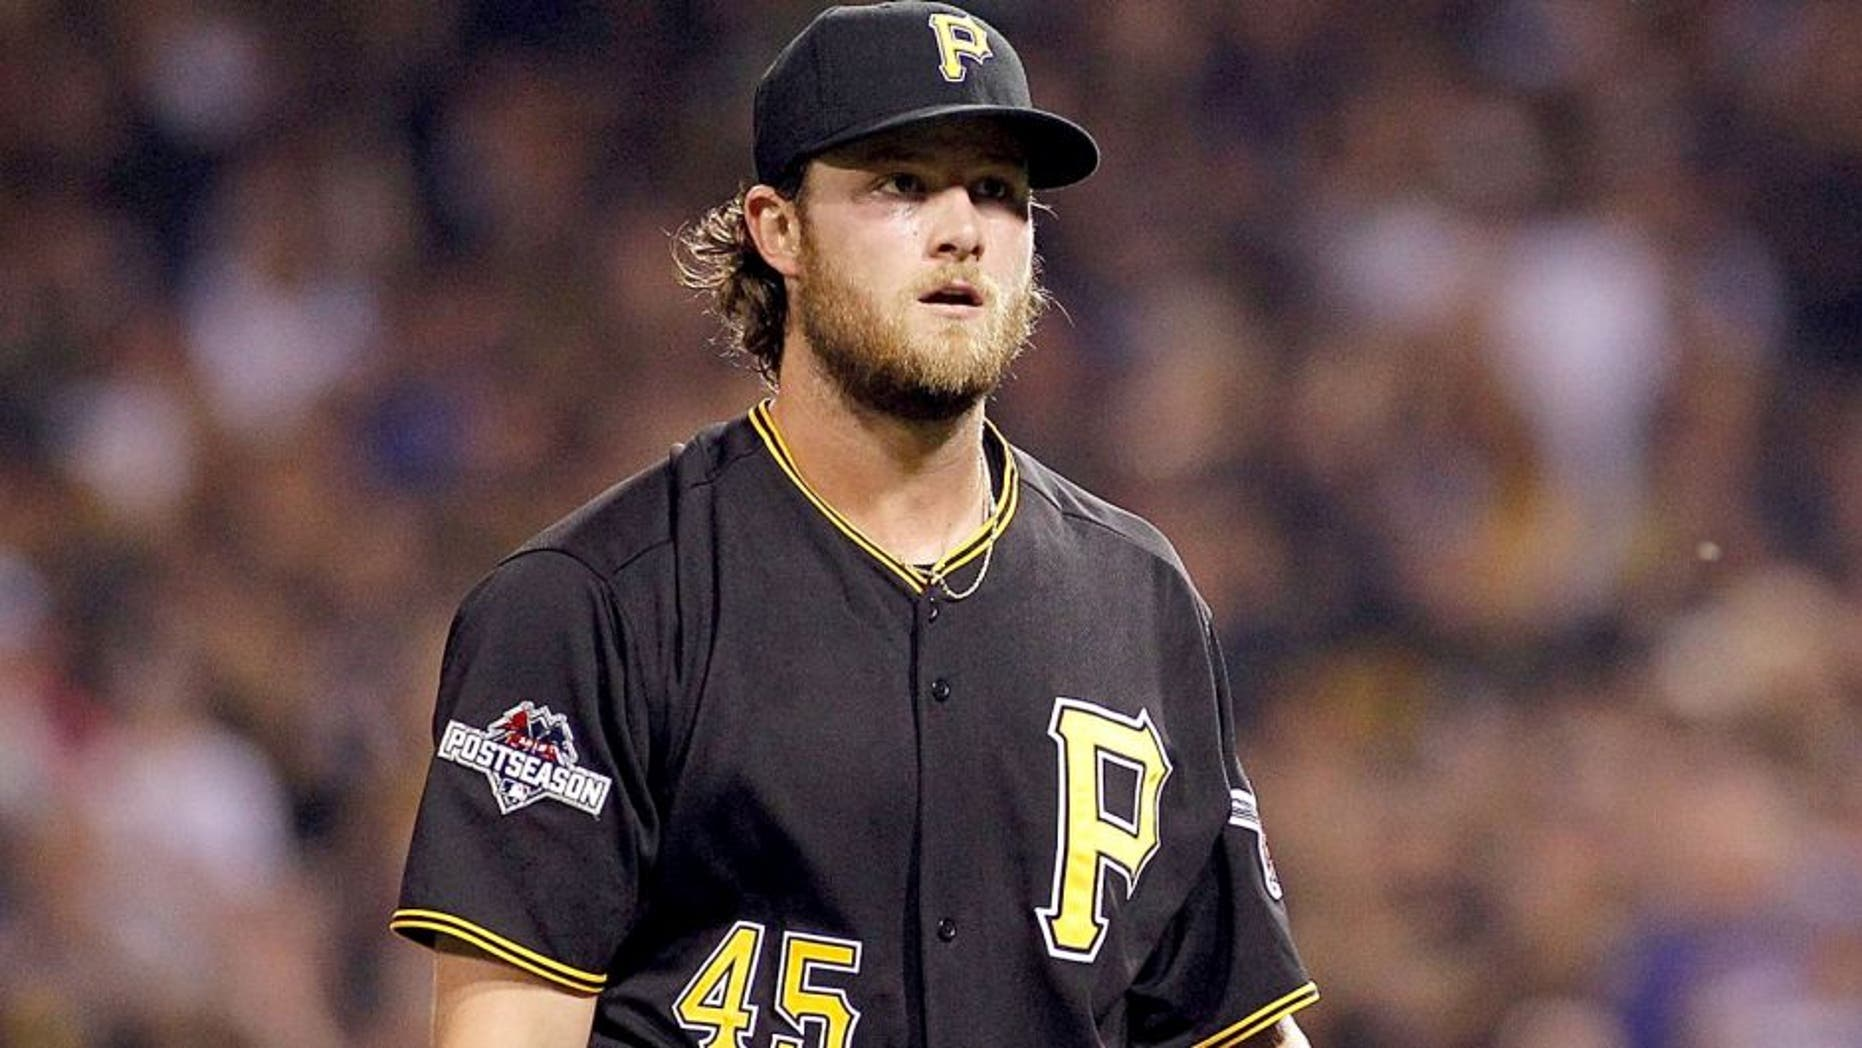 PITTSBURGH, PA - OCTOBER 07: Gerrit Cole #45 of the Pittsburgh Pirates walks off the field after the first inning against the Chicago Cubs during the National League Wild Card game at PNC Park on October 7, 2015 in Pittsburgh, Pennsylvania. (Photo by Justin K. Aller/Getty Images)